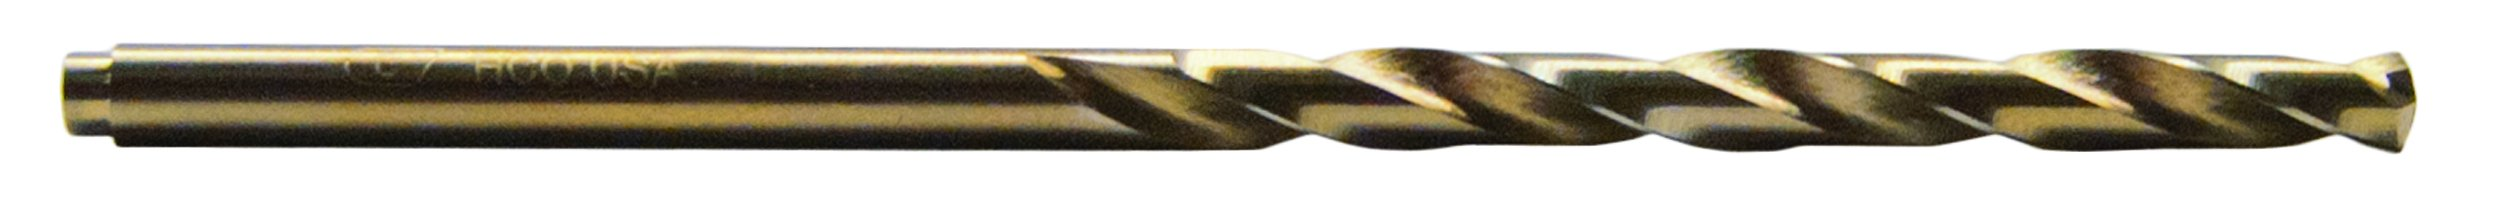 Century Drill and Tool 26207 Cobalt High Speed Steel Drill Bit, 7/64-Inch, 2 Pack by Century Drill & Tool